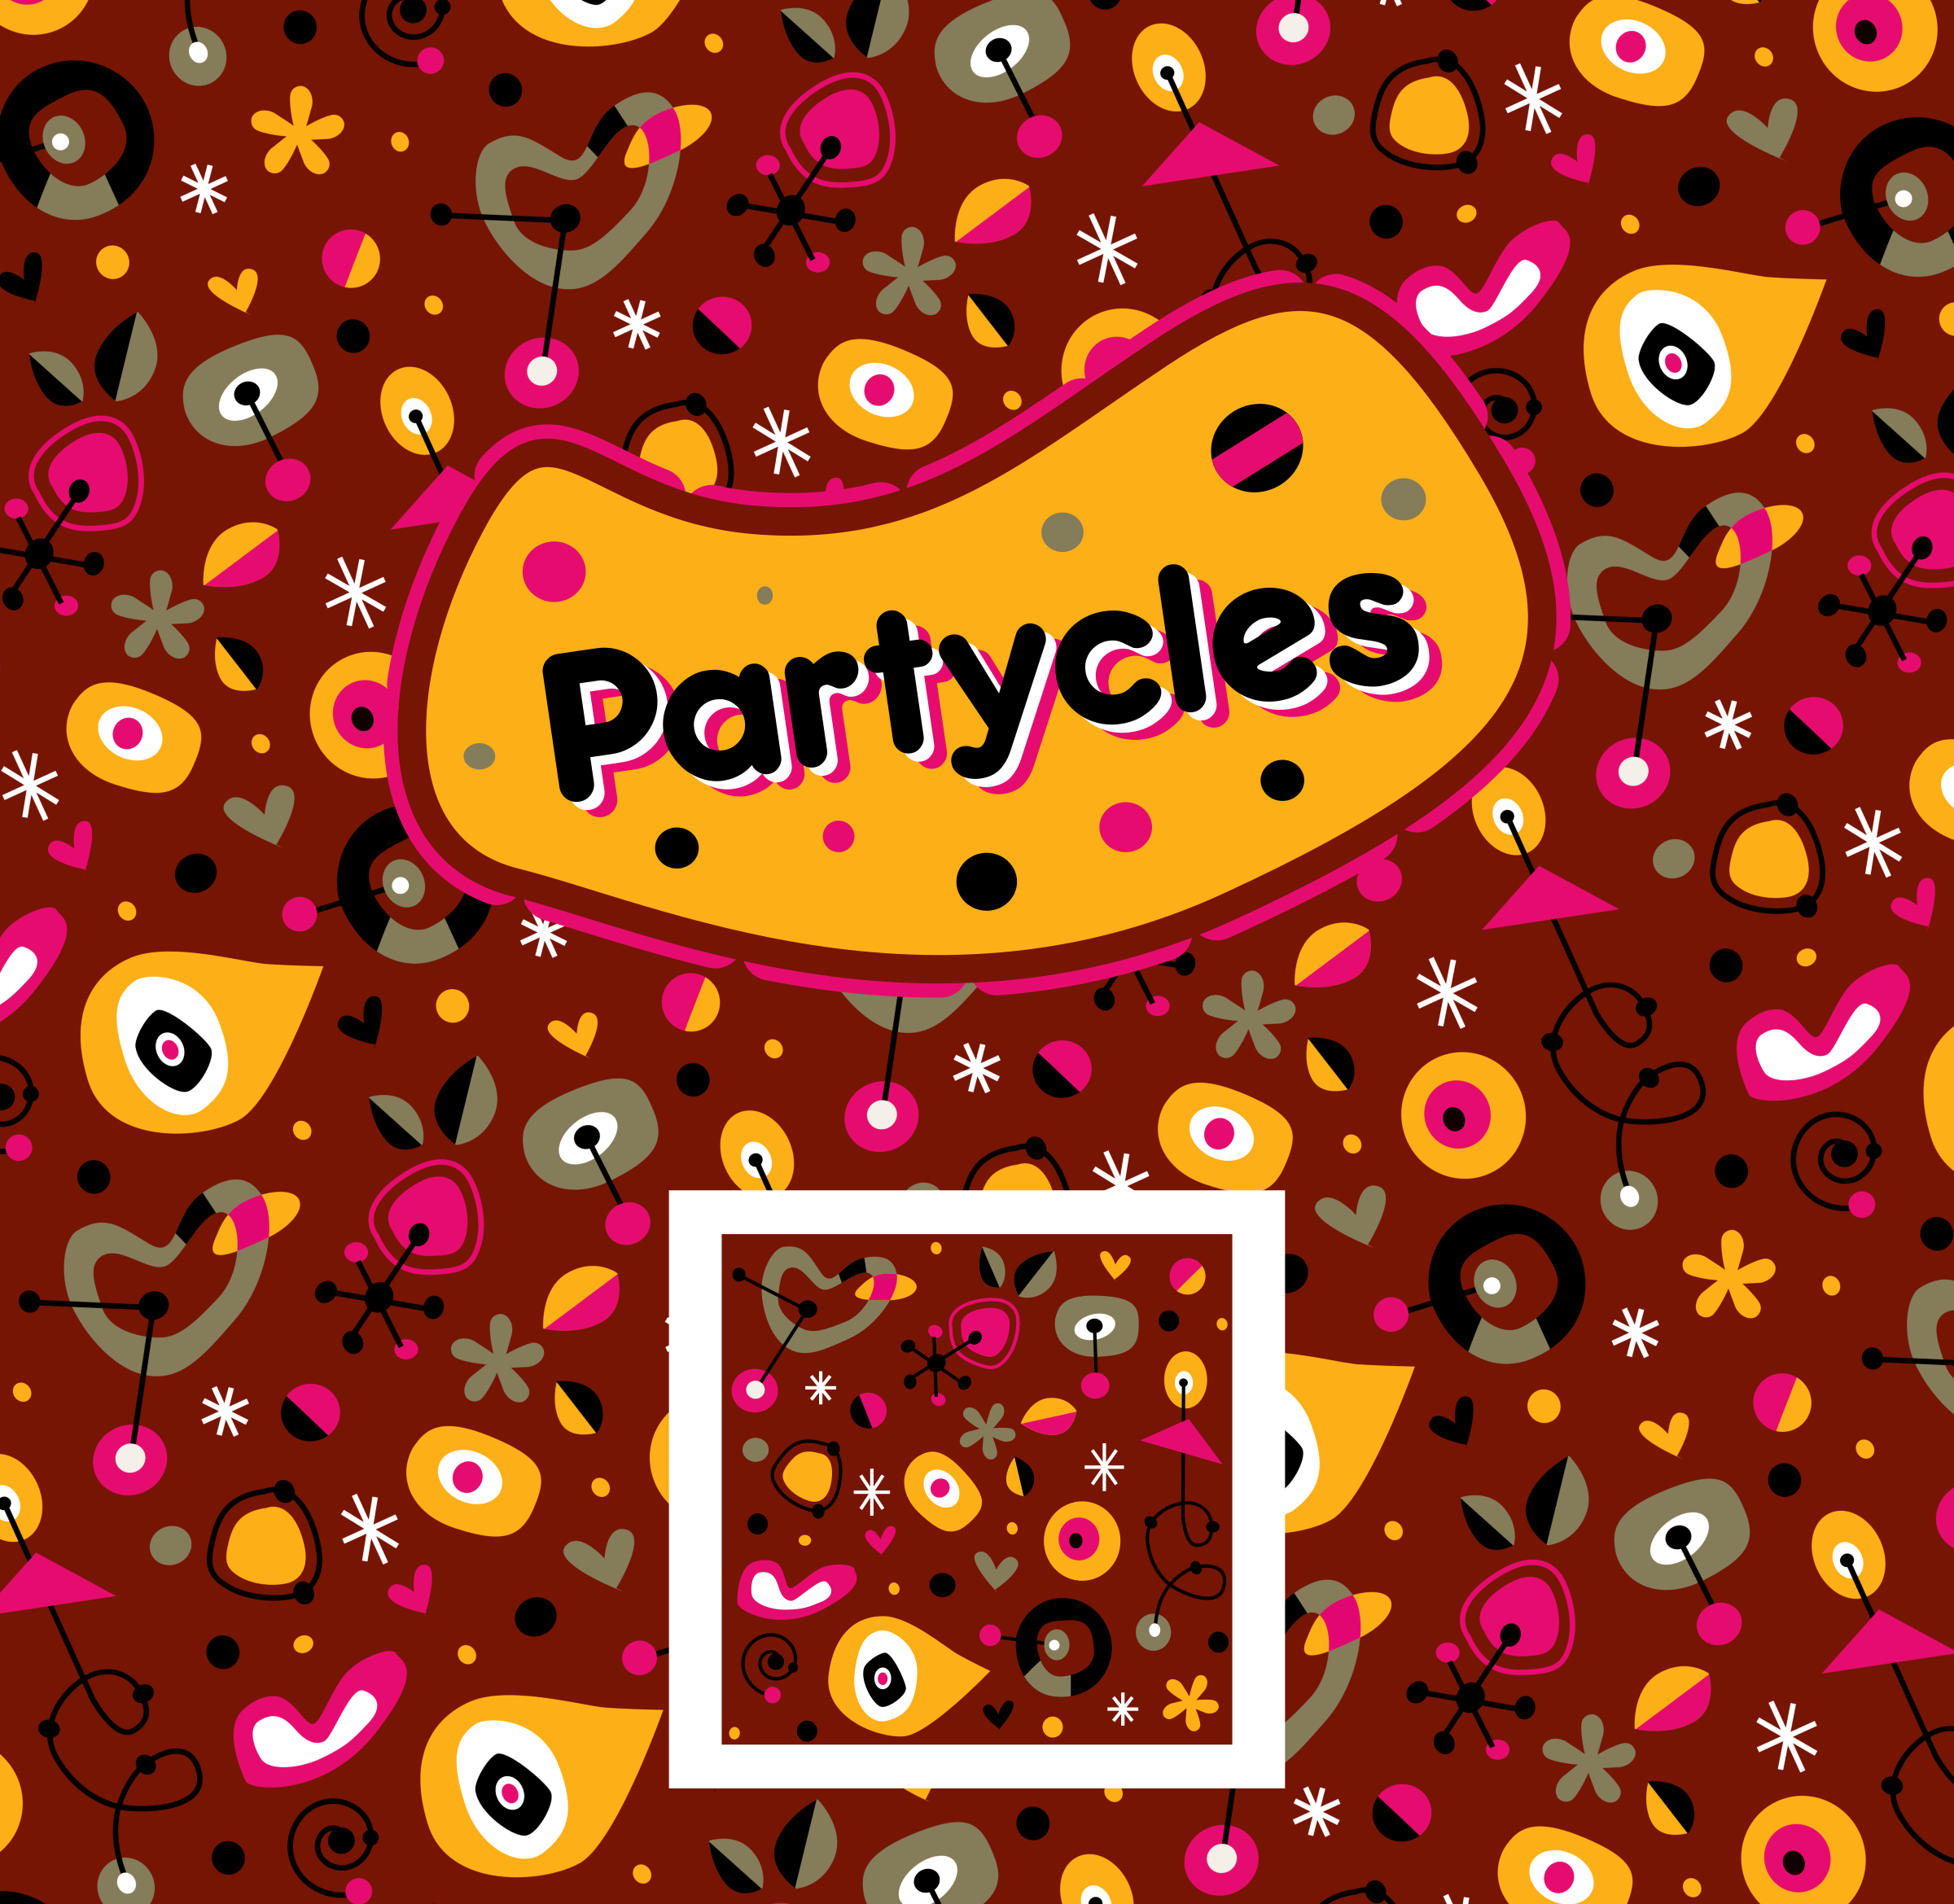 'Partycles', Seamless funky retro pattern  by Klàro